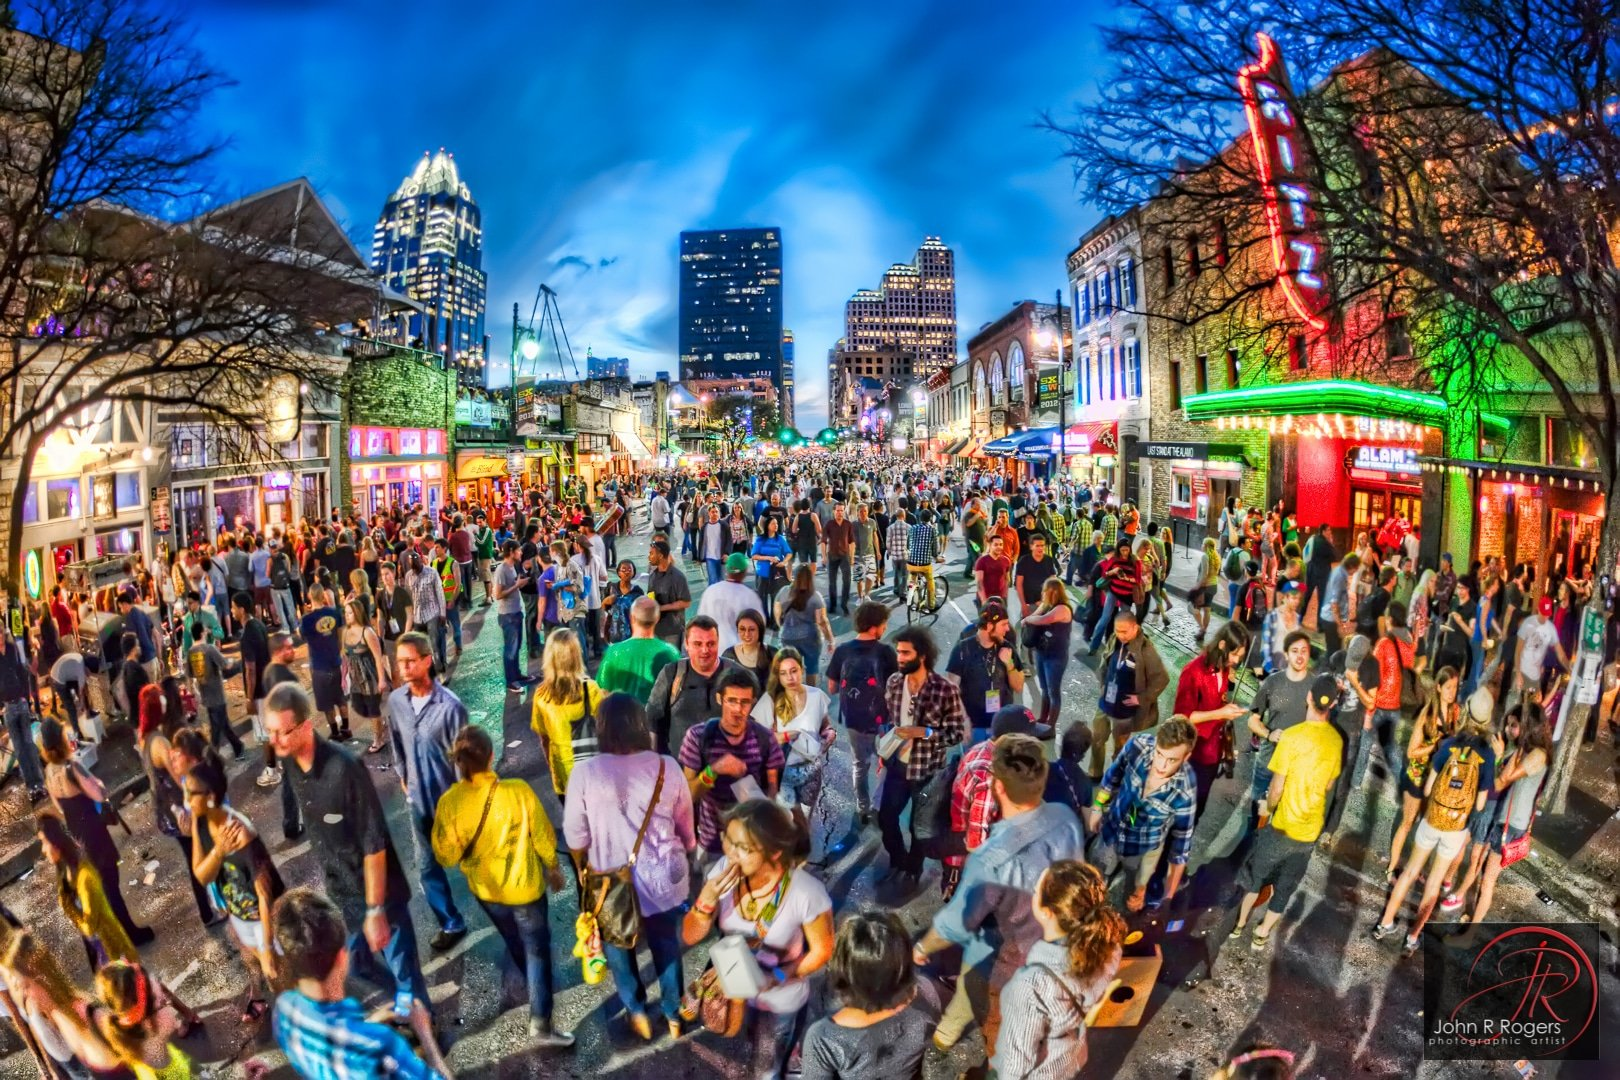 SXSW AUSTIN IS HERE & MUSIC FESTIVAL SEASON IS OFFICIALY BACK